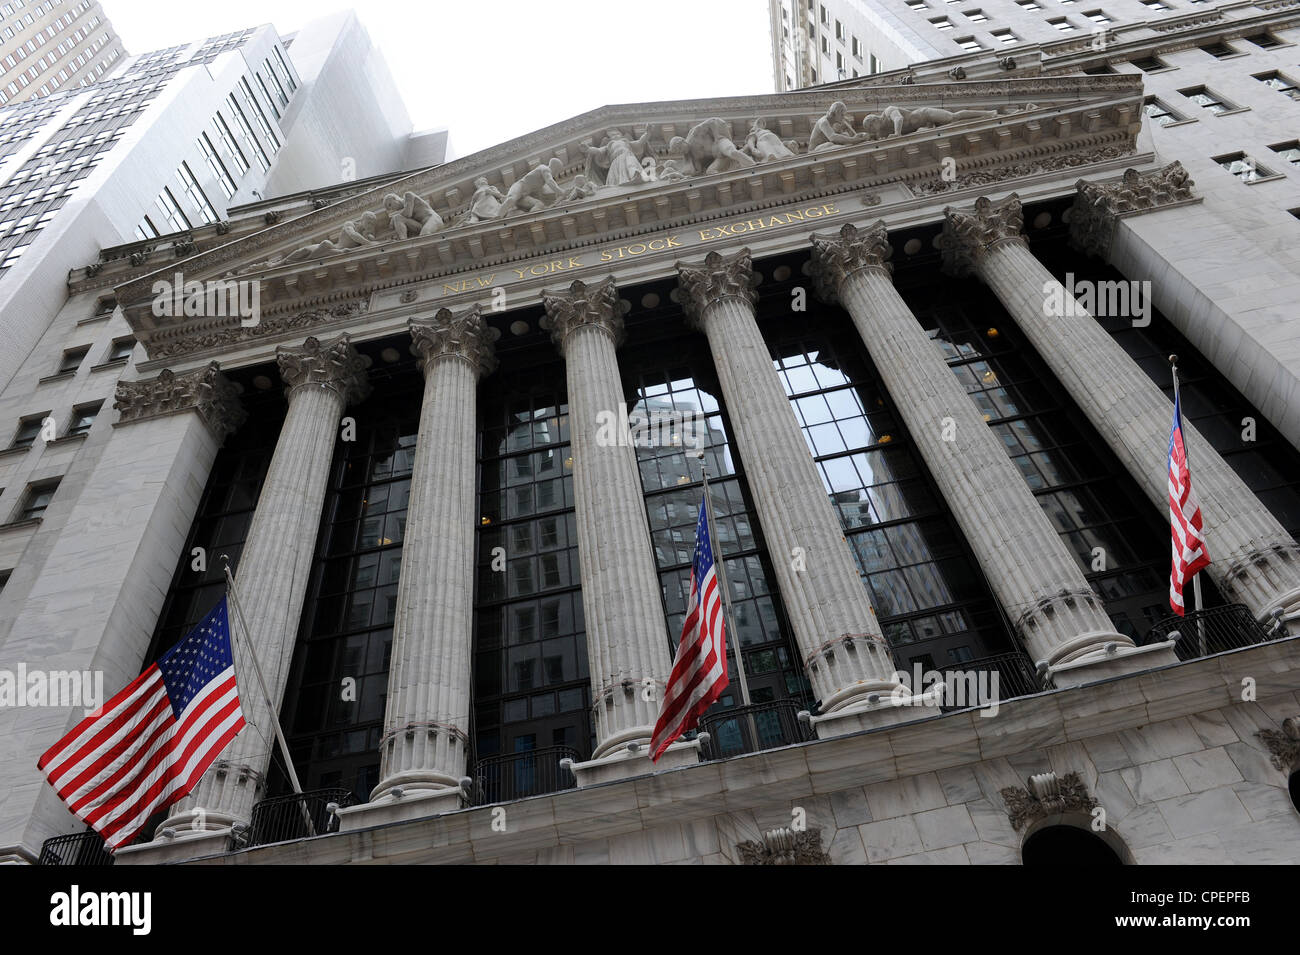 Flags outside The New York Stock Exchange, New York - Stock Image